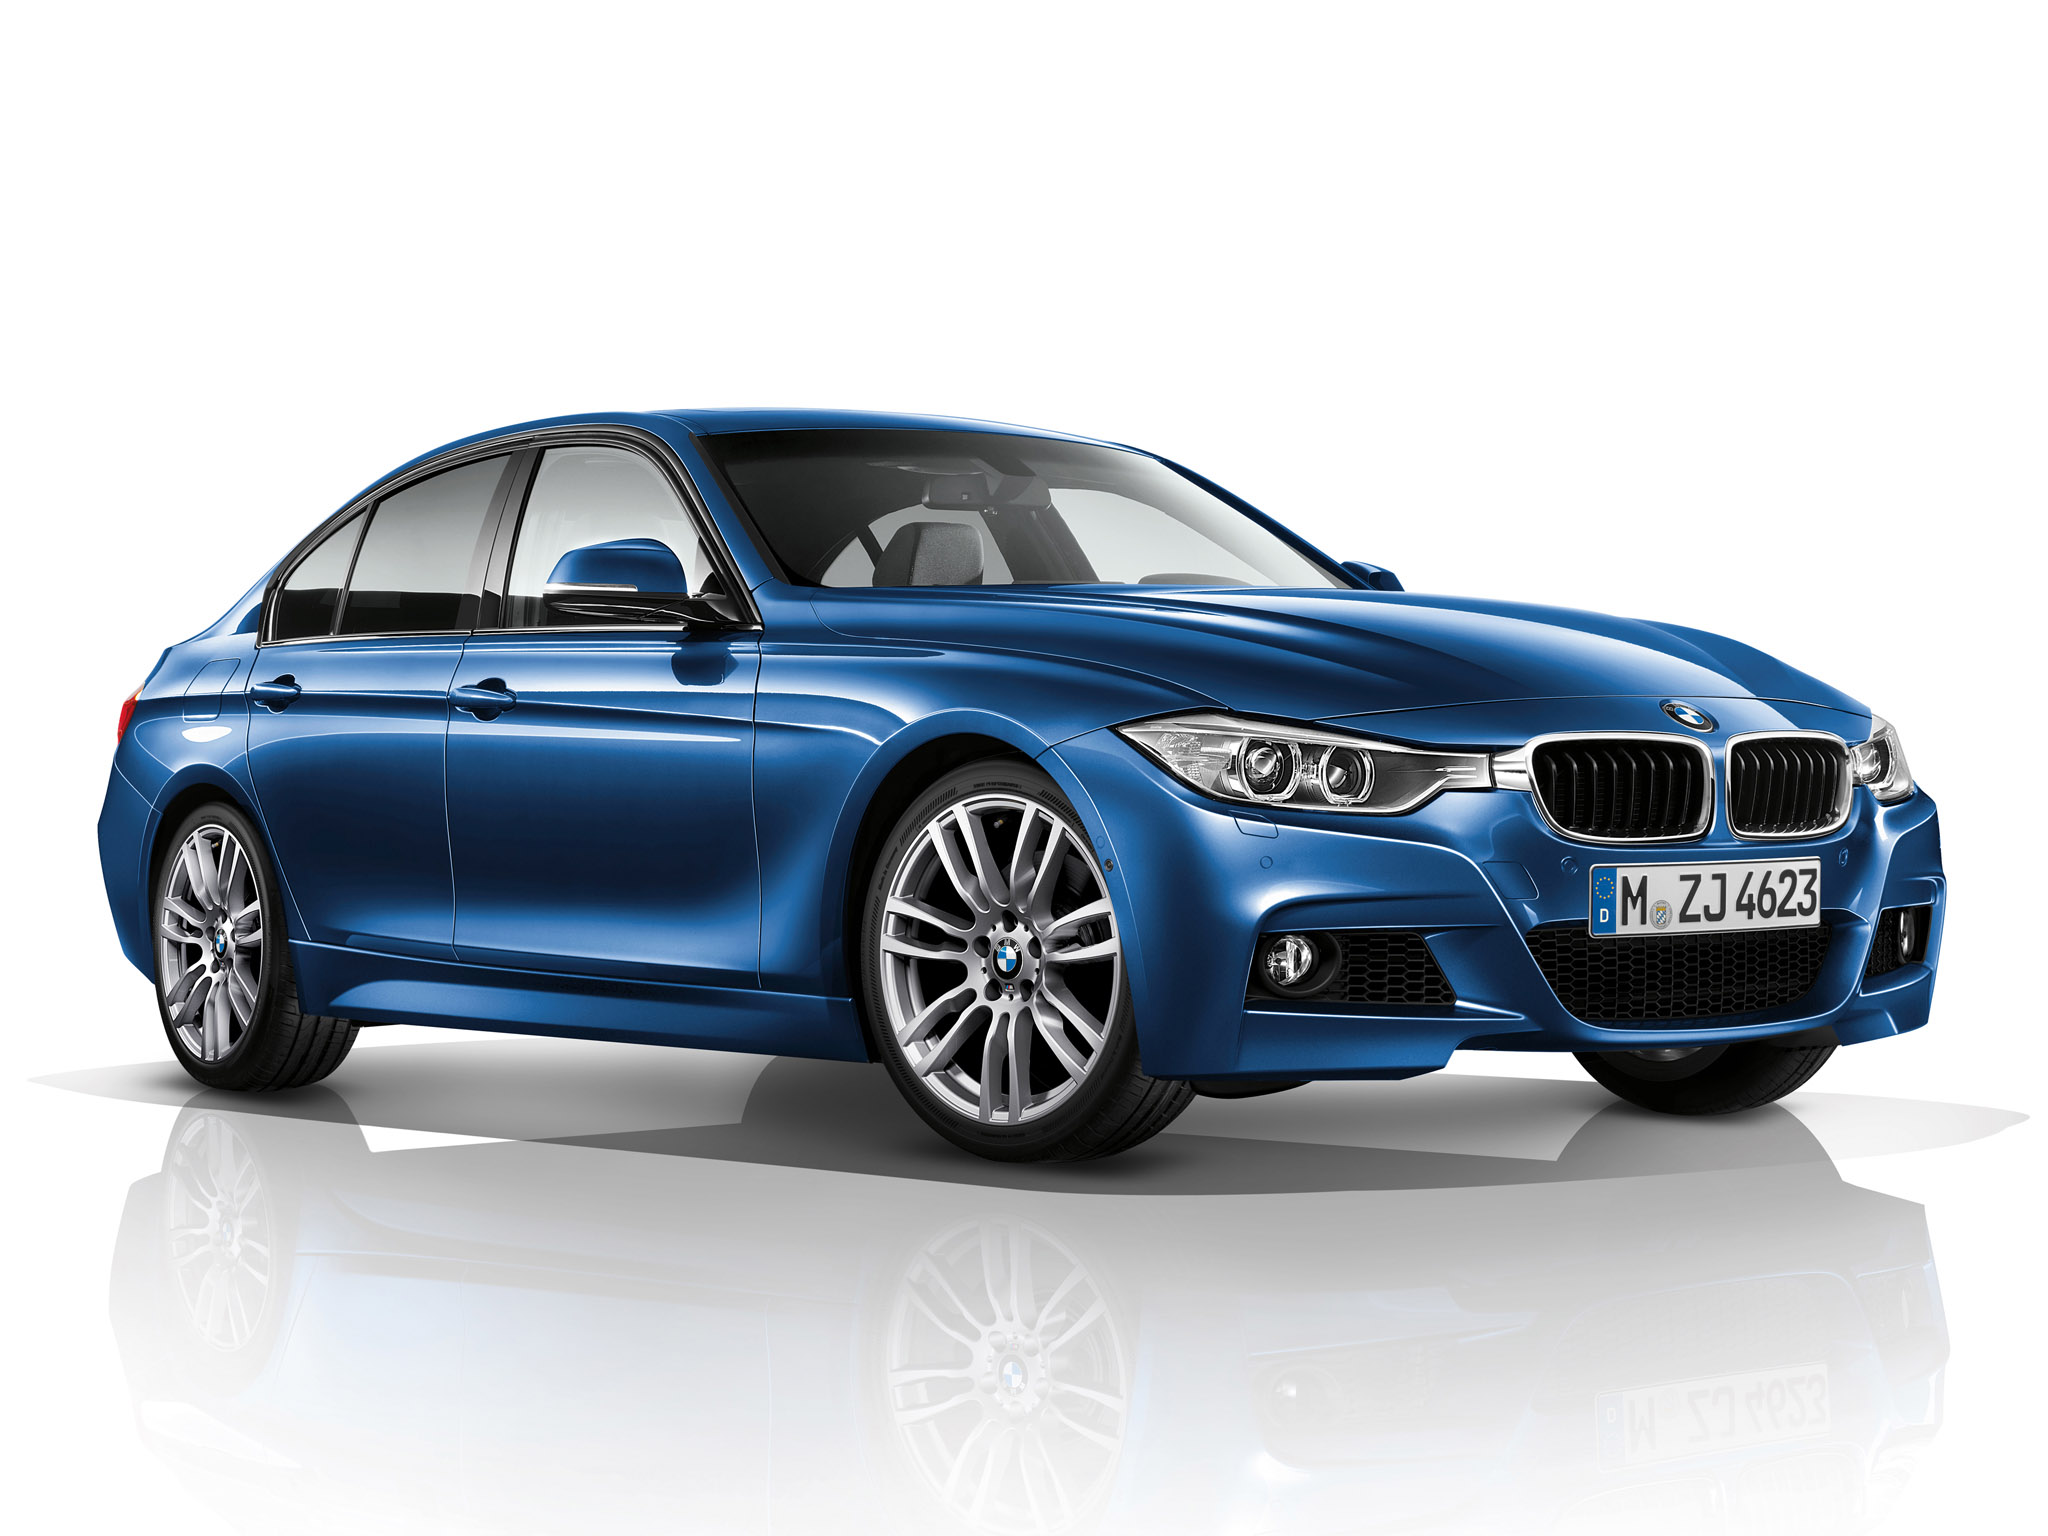 bmw 3 series m sportpaket f30 2012 bmw wallpaper 31460095 fanpop. Black Bedroom Furniture Sets. Home Design Ideas